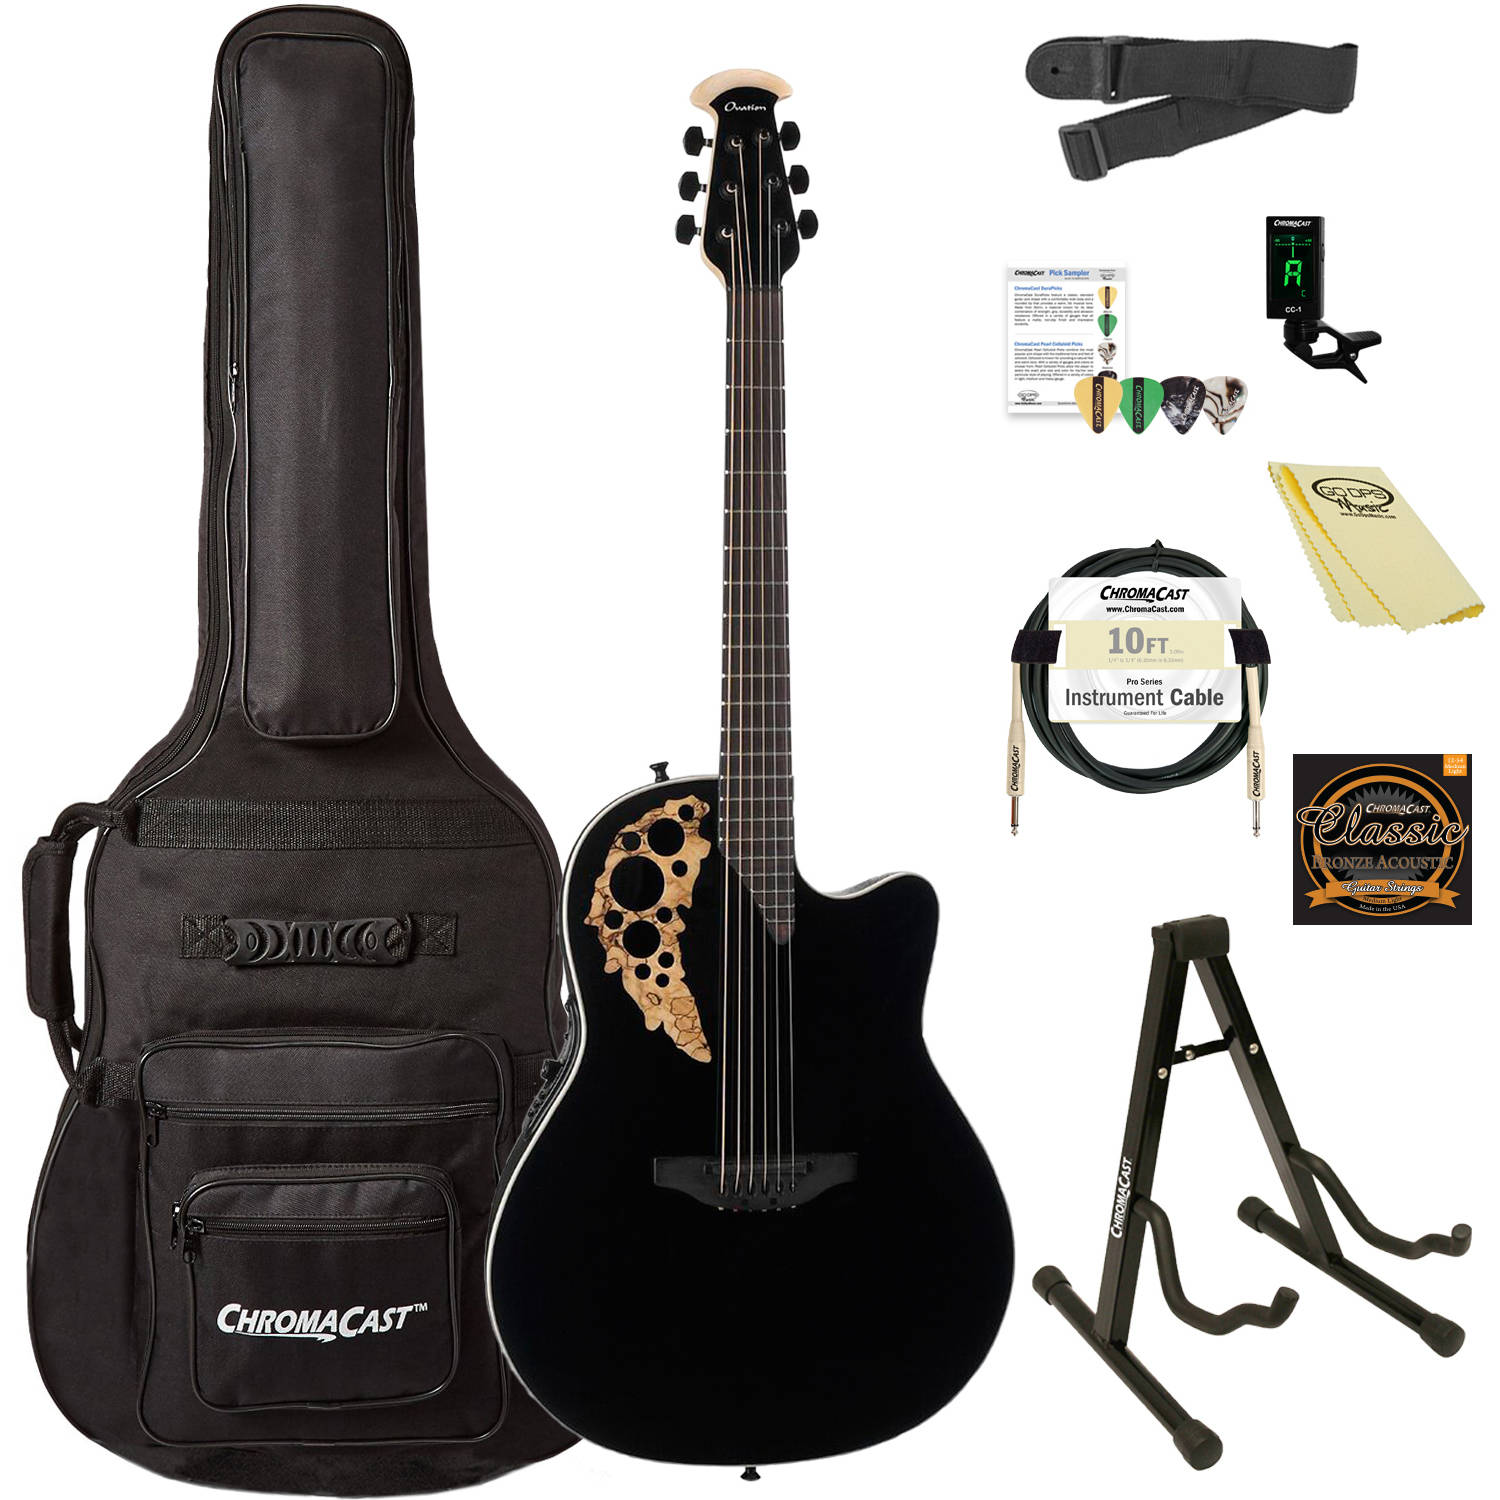 Ovation Elite TX Plus 1868TXP-5GSM Super Shallow Acoustic-Electric Guitar (Black Spalted Maple) with ChromaCast Accessories